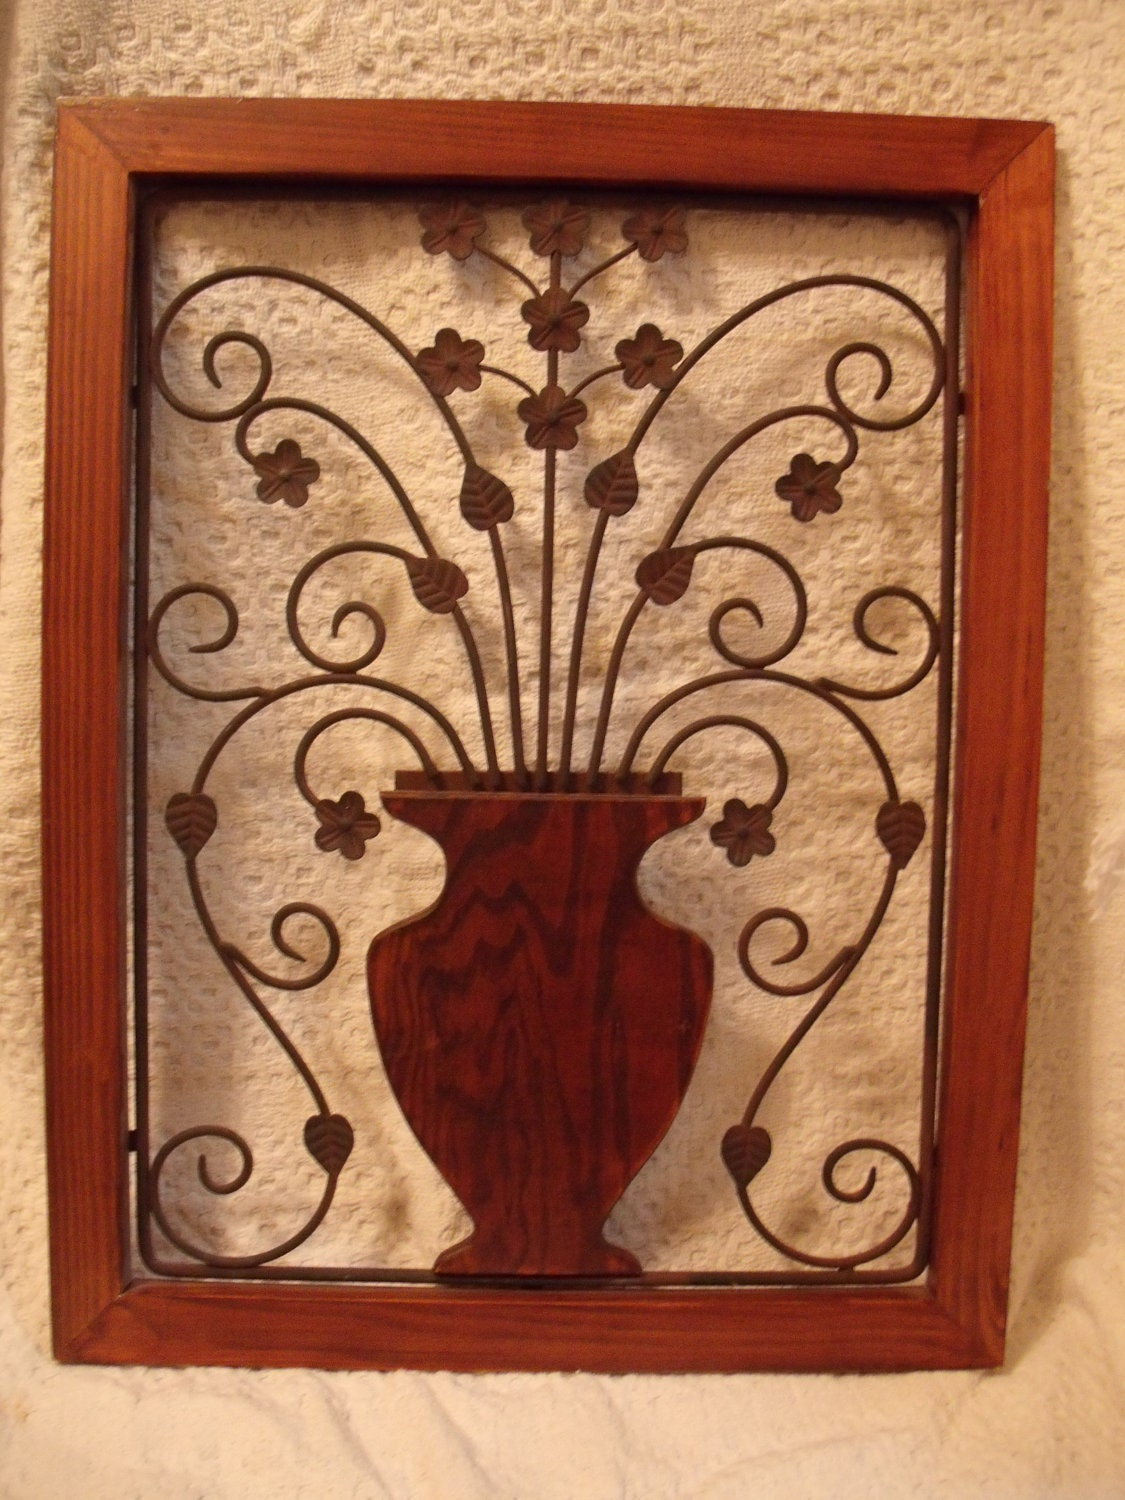 Wrought Iron Wall Decor With Wood Frame : Etsy your place to buy and sell all things handmade